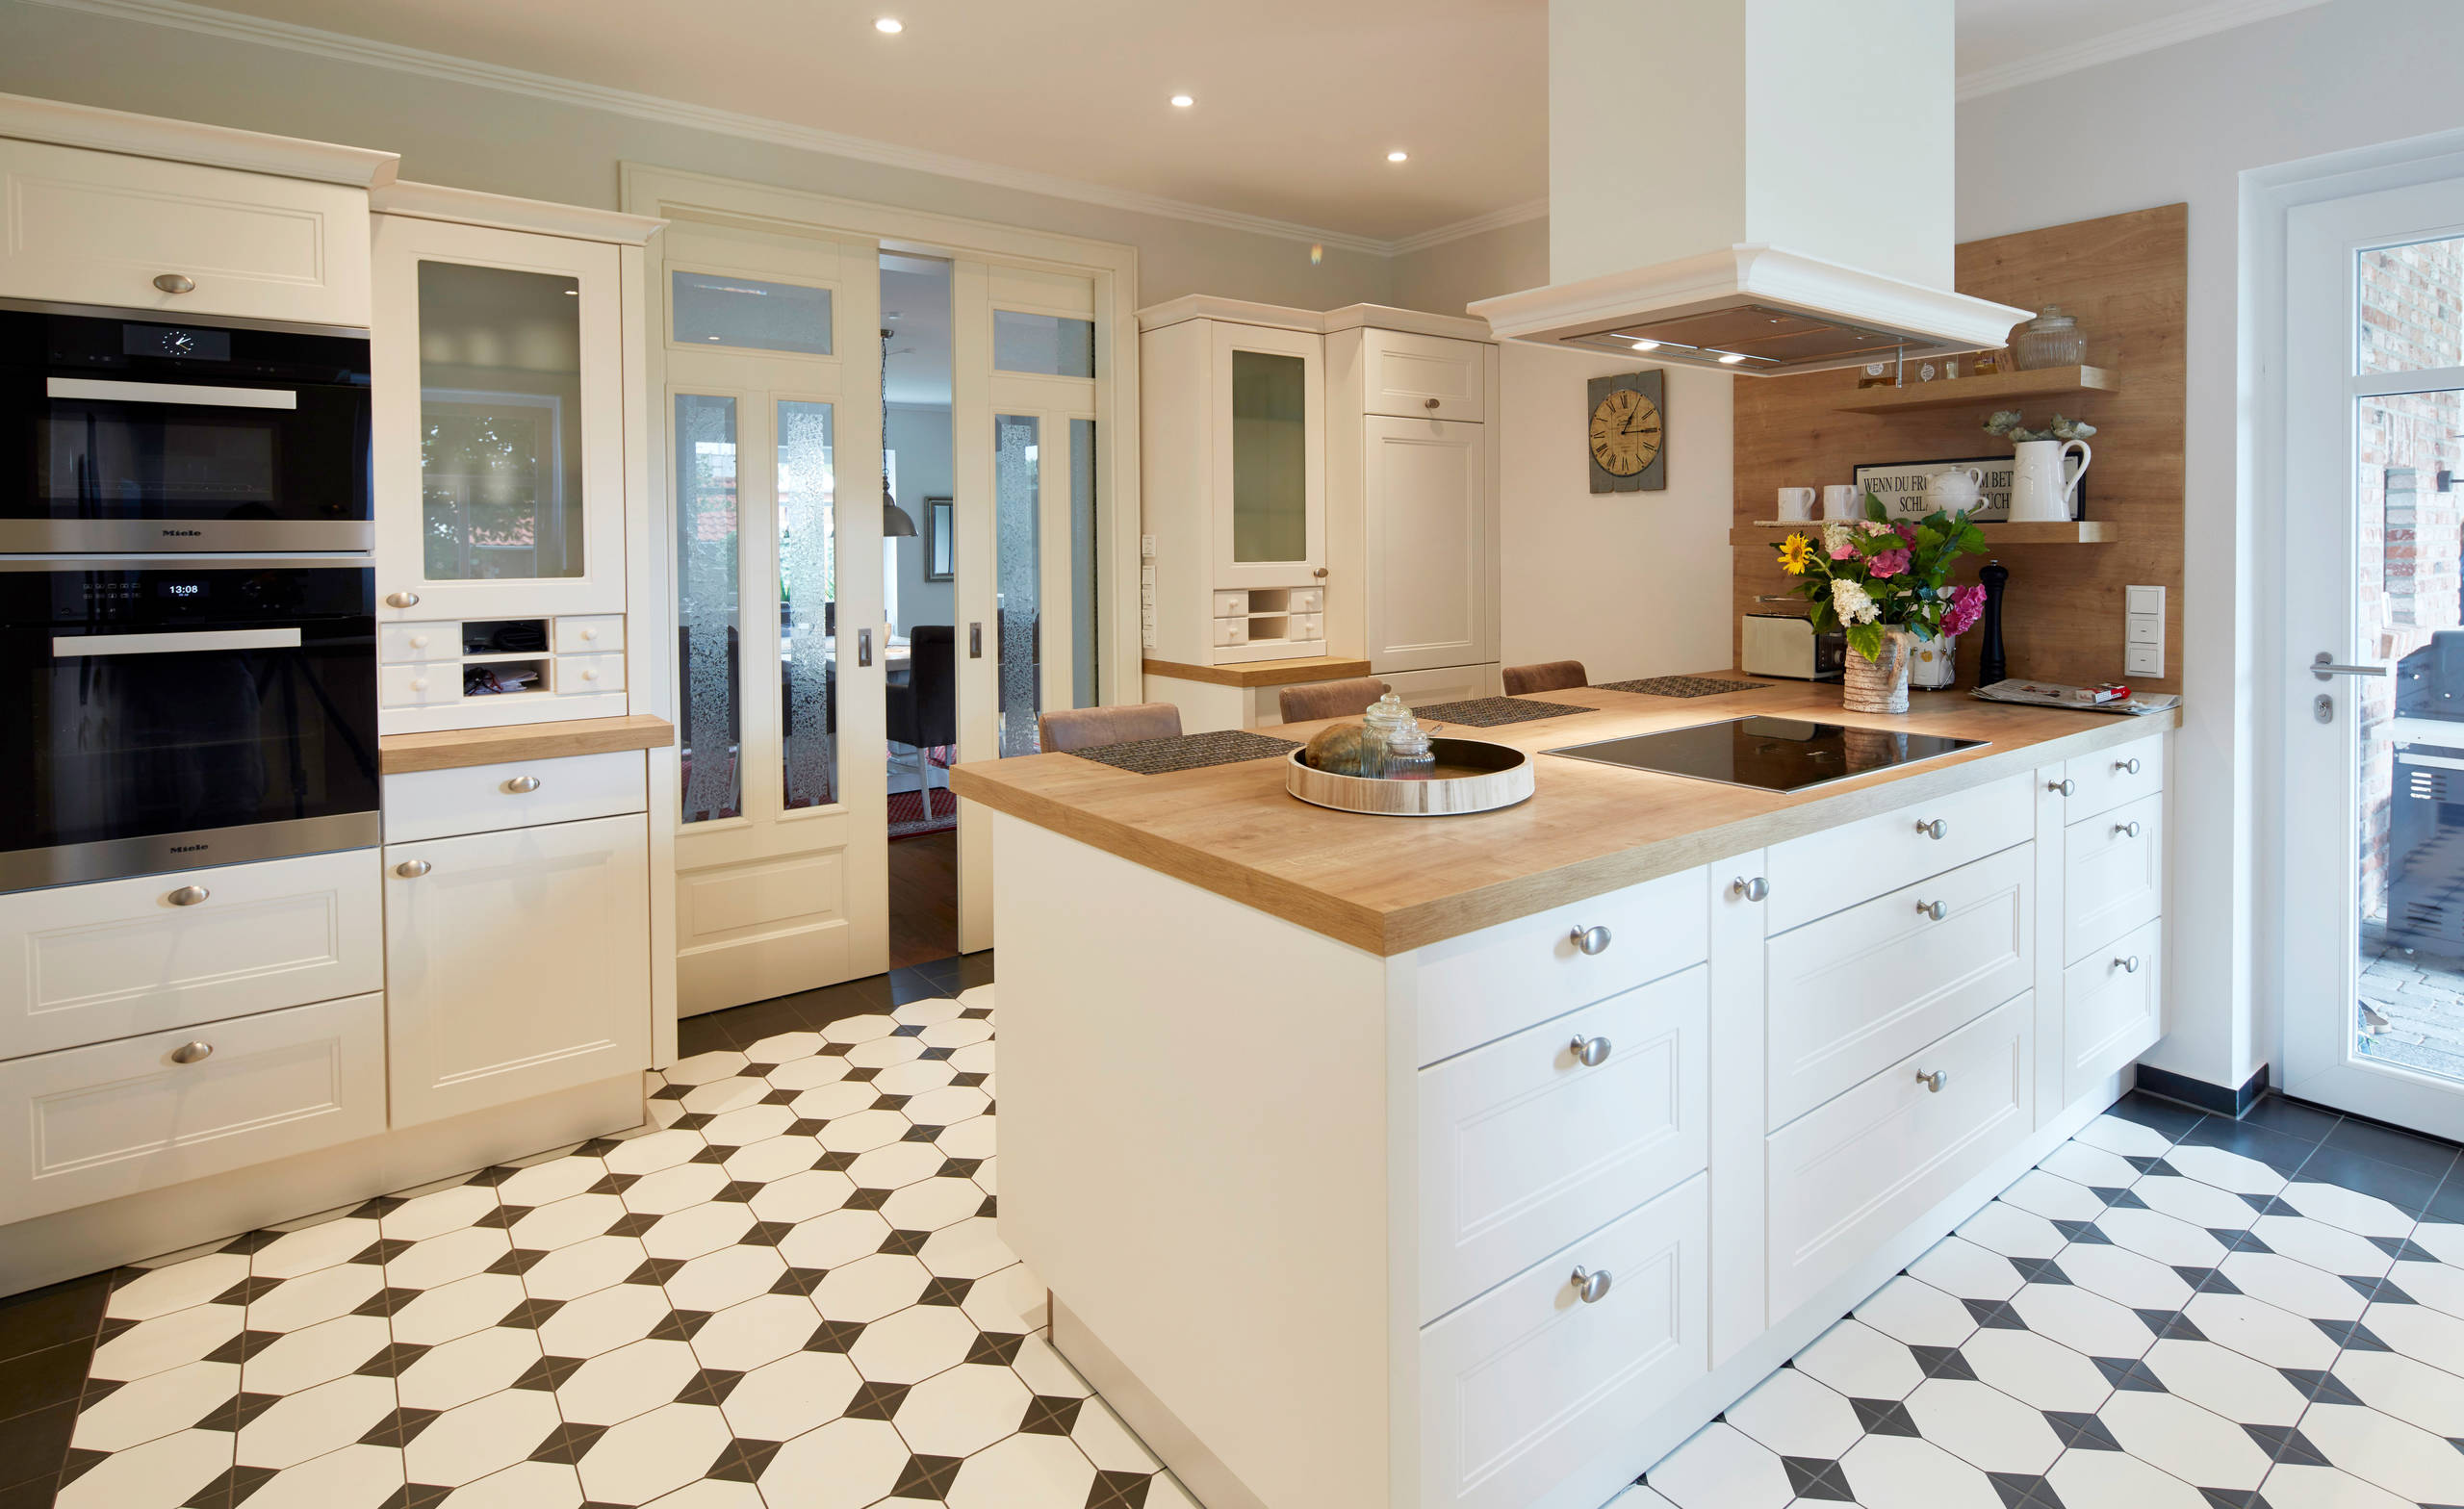 75 Beautiful Kitchen With White Cabinets And Black Appliances Pictures Ideas December 2020 Houzz